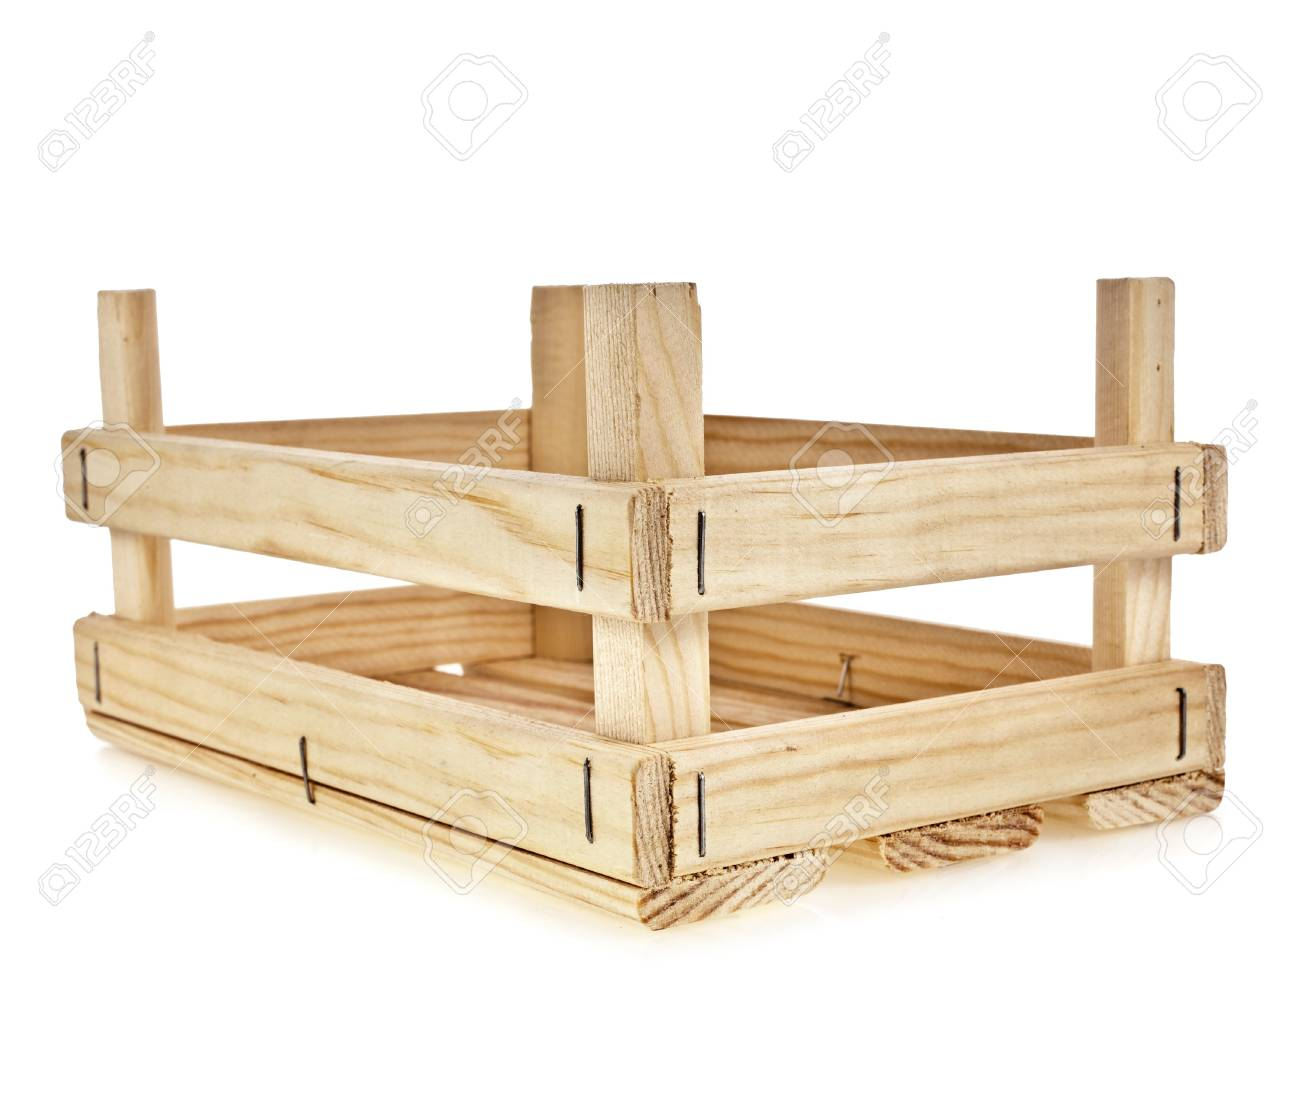 empty wooden box isolate on a white background Stock Photo - 17735670